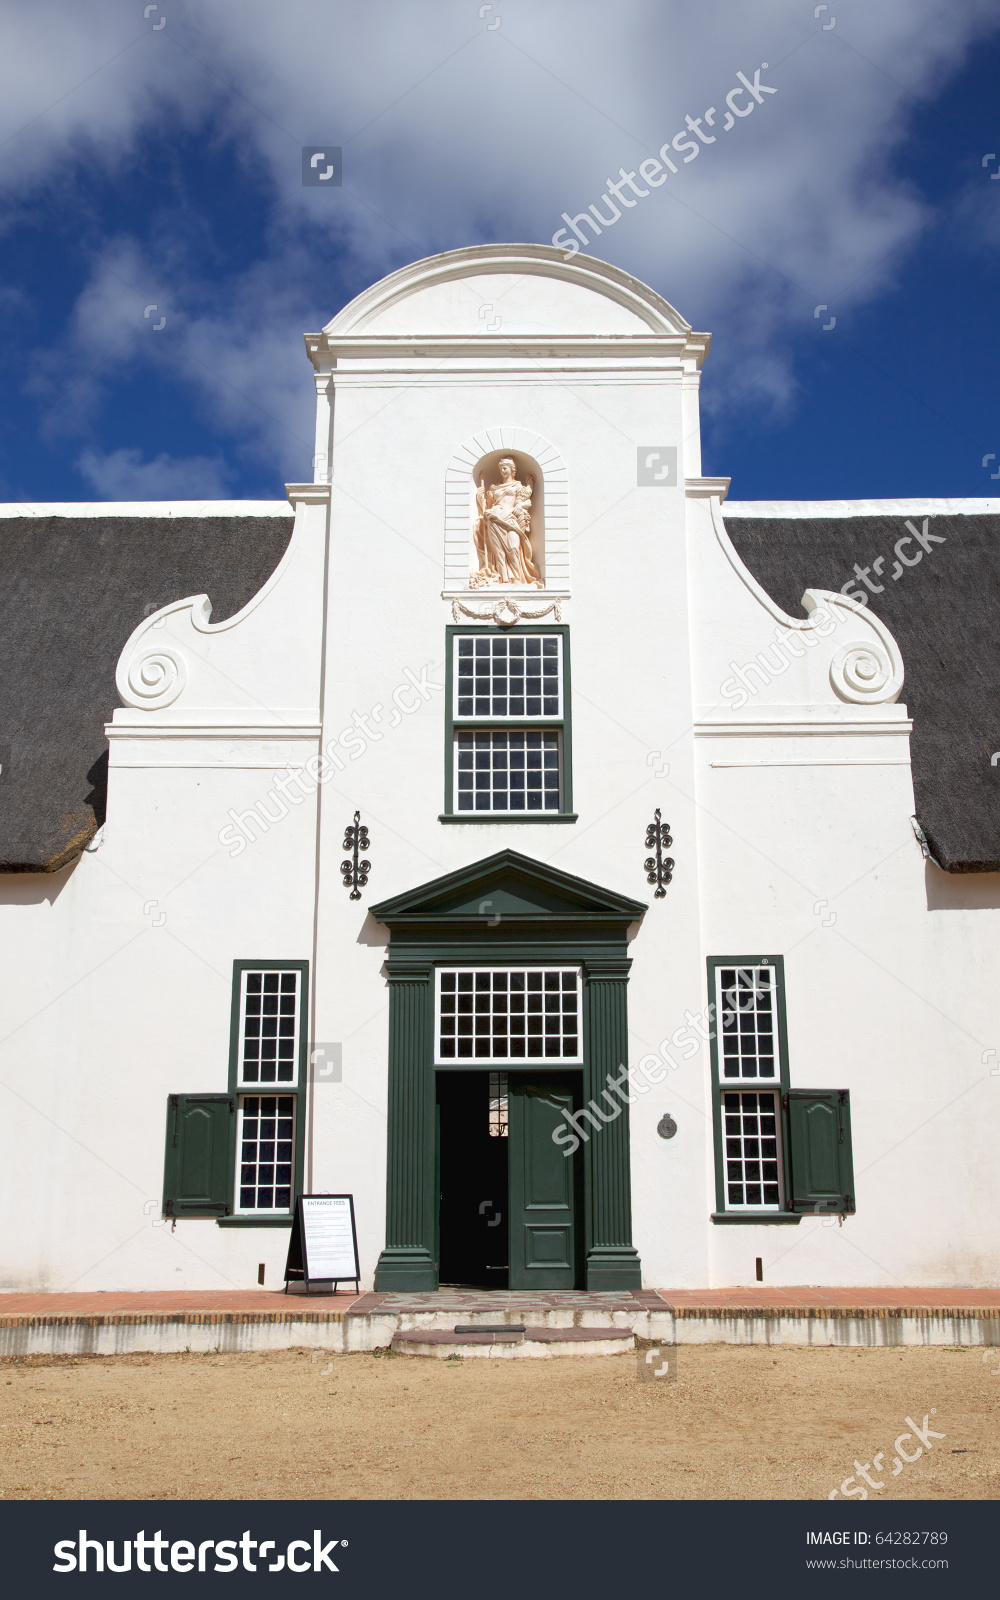 The Gable Of Groot Constantia Manor House, The Oldest And Most.